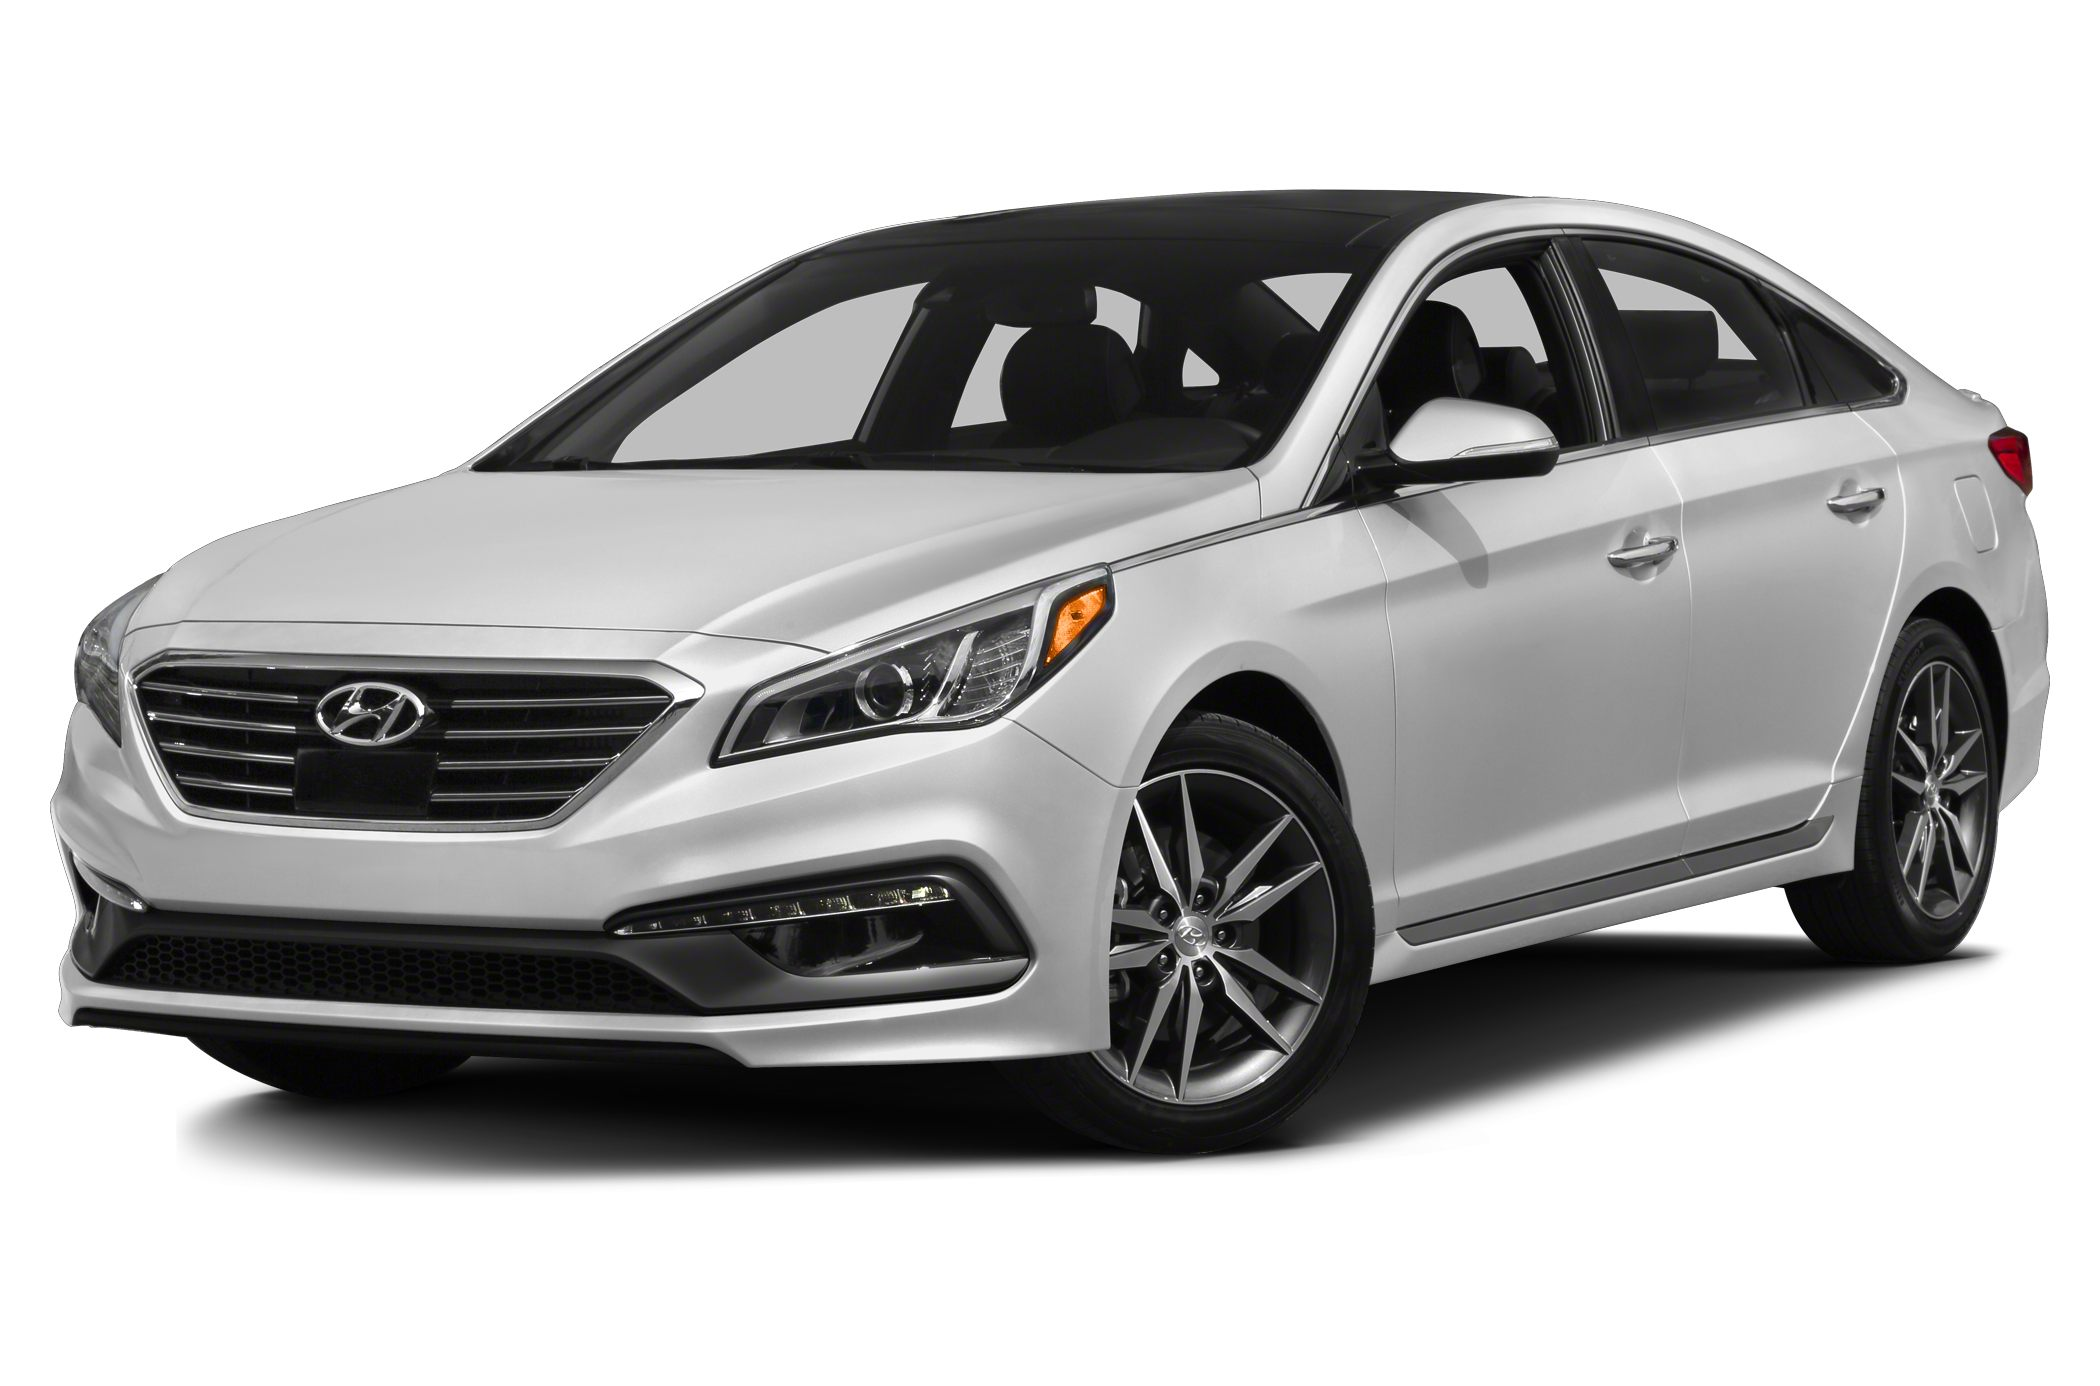 2015 Hyundai Sonata Sport Sedan for sale in Hicksville for $24,330 with 0 miles.